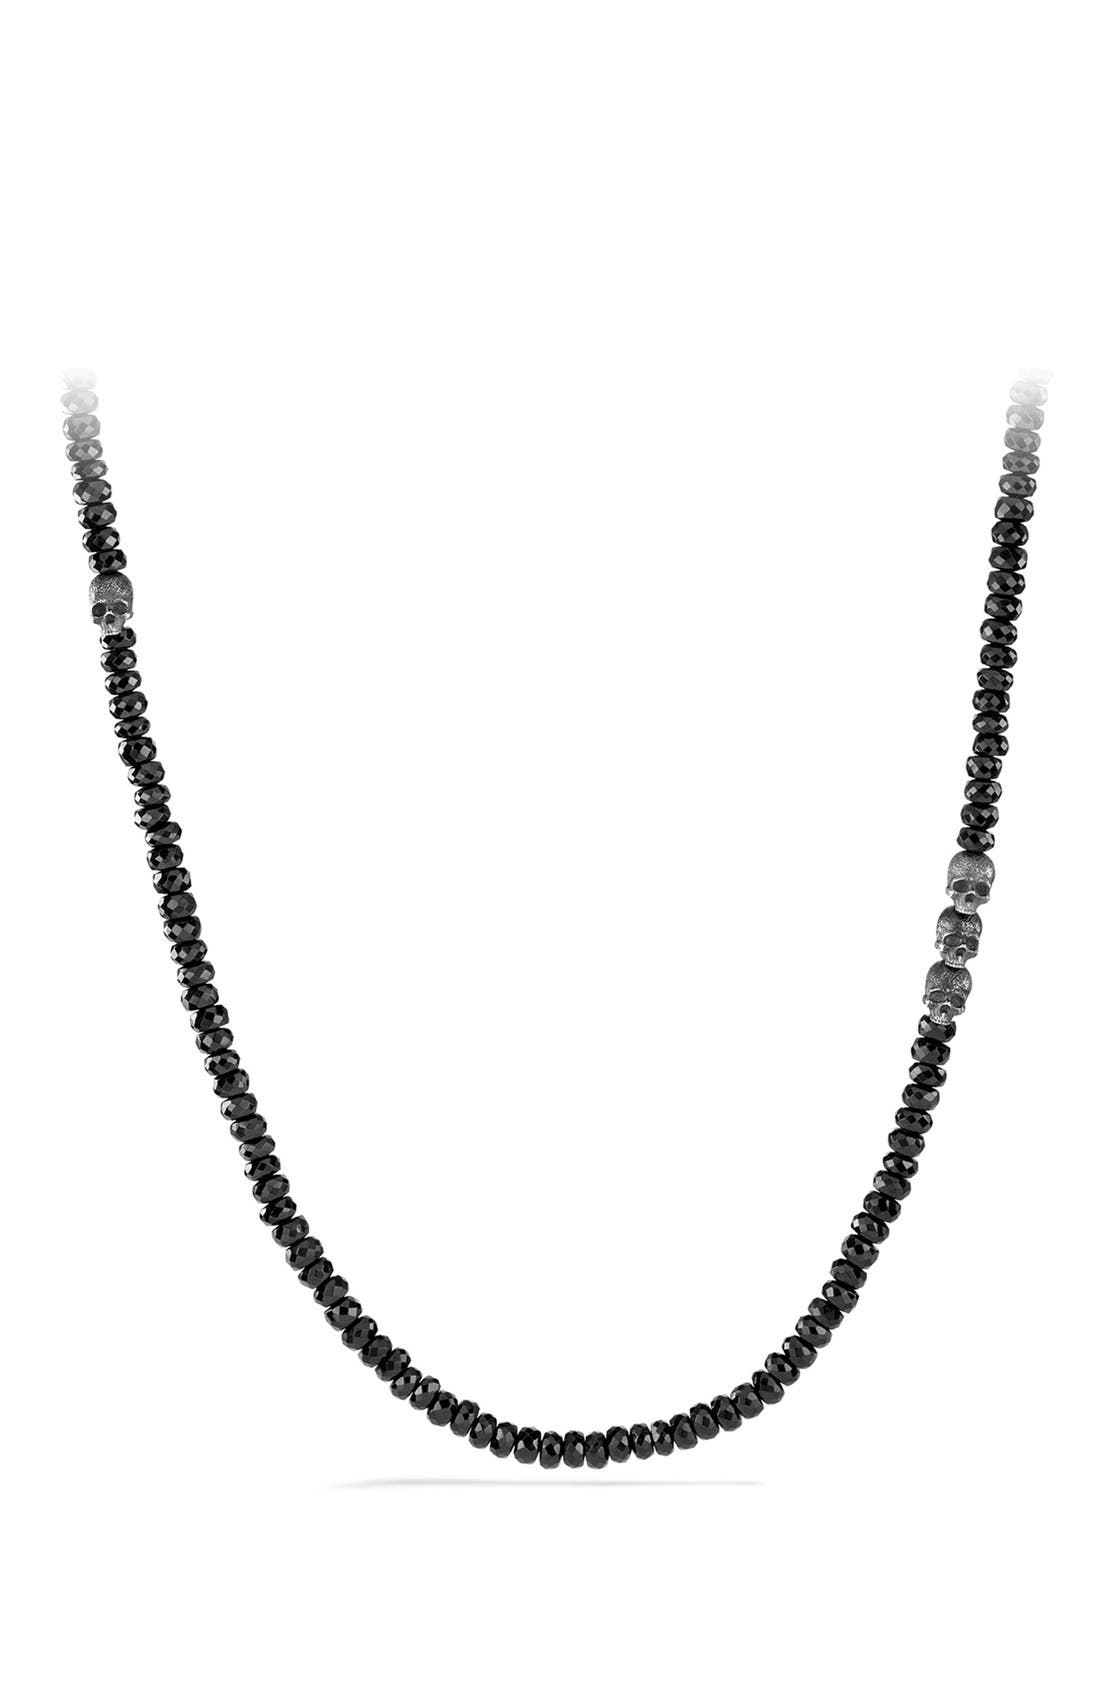 'Skull' Necklace in Silver,                             Main thumbnail 1, color,                             005